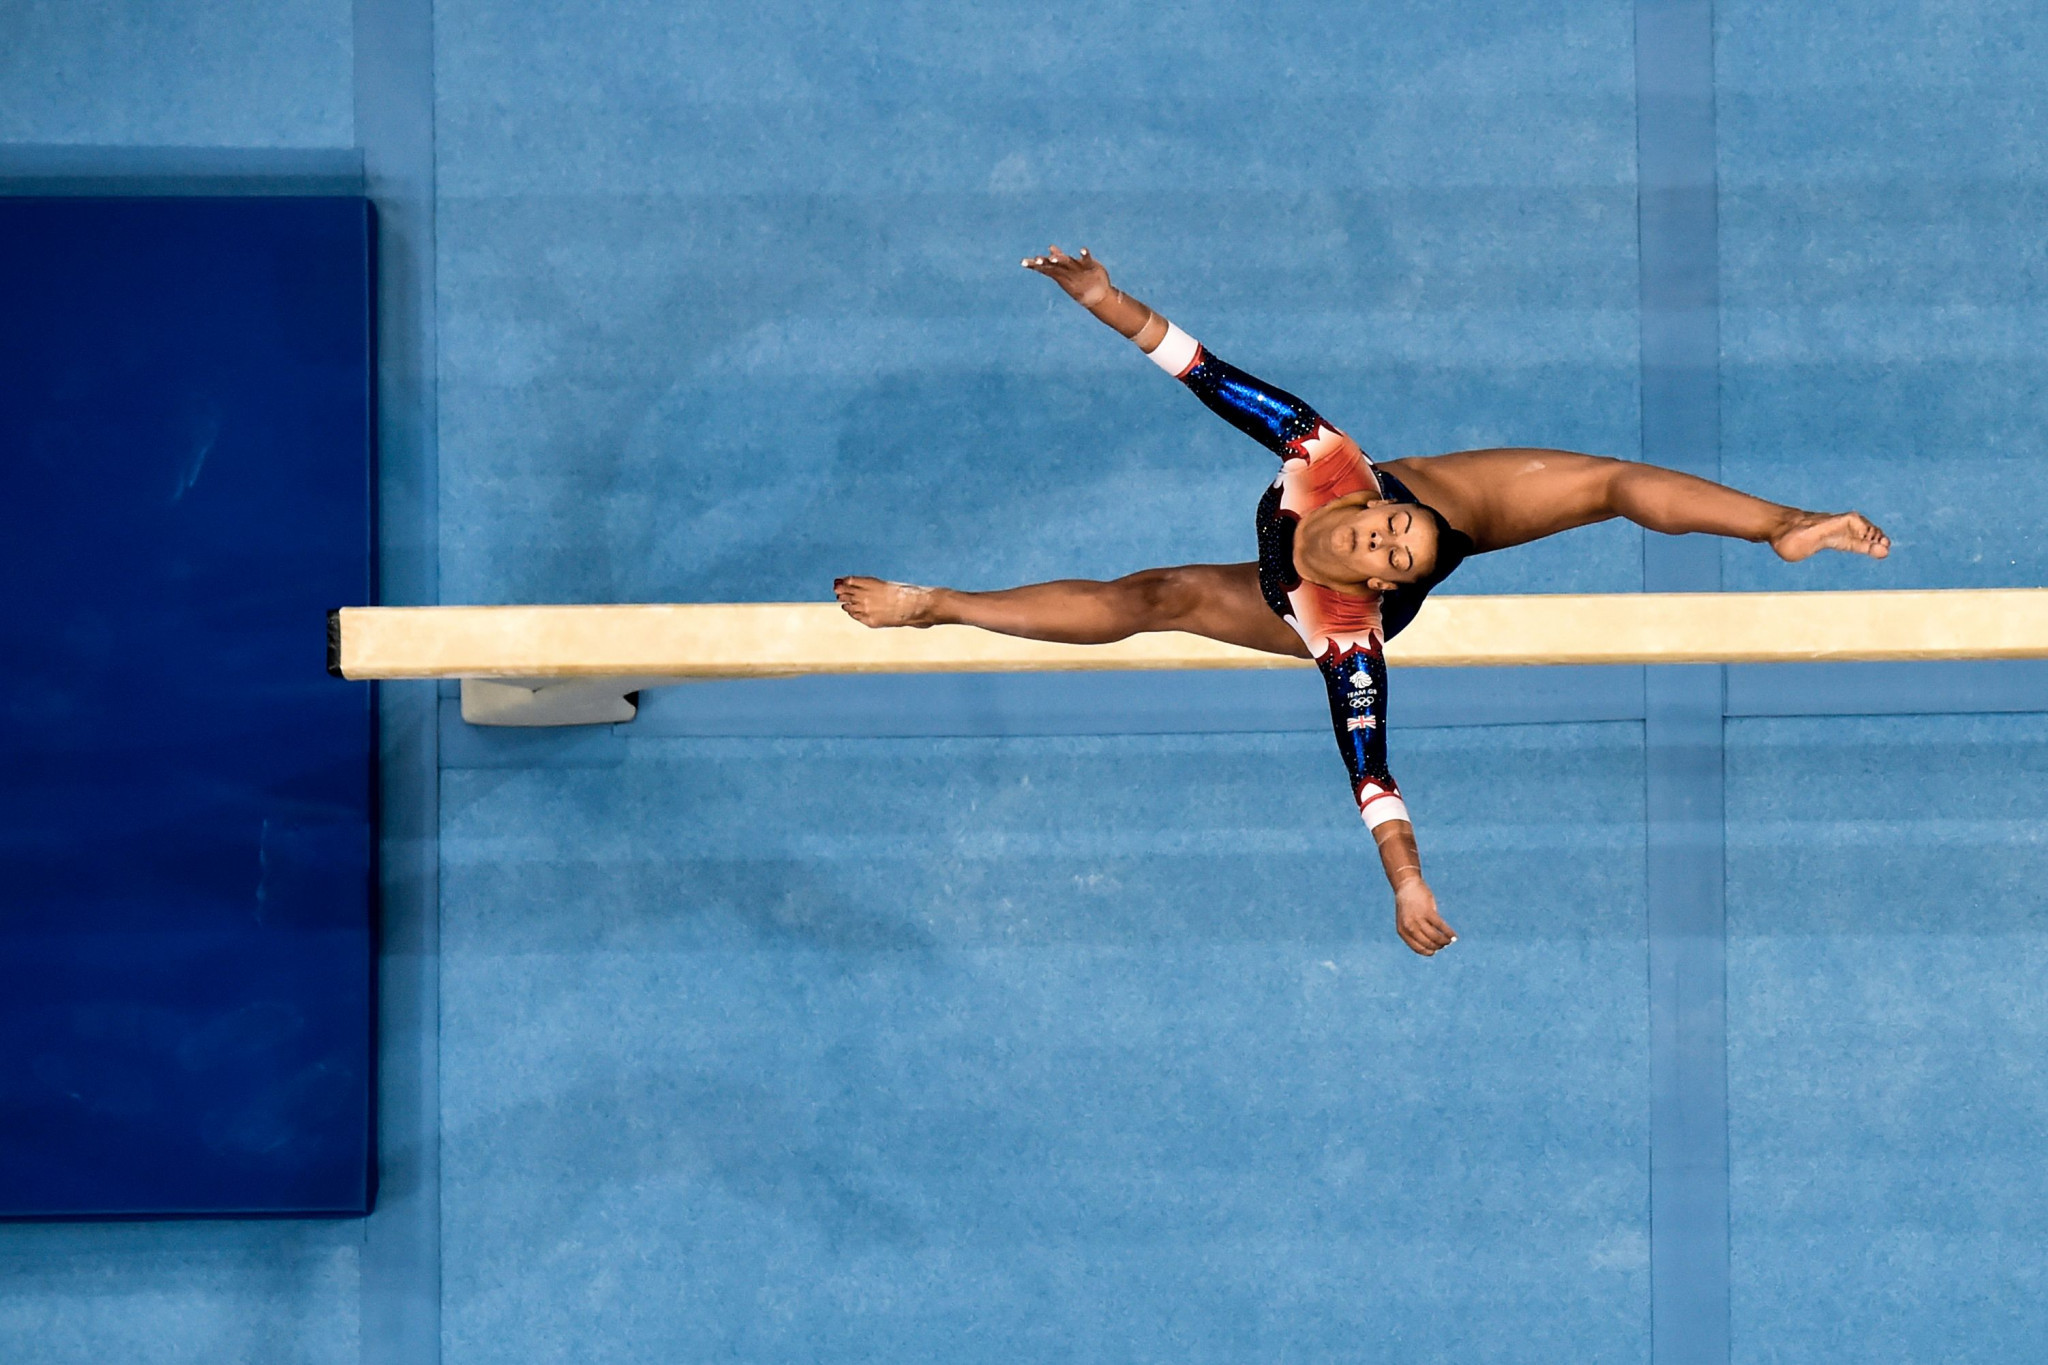 Gymnastics will be on the programme at the 2023 European Games in Poland, the EOC has announced ©Getty Images